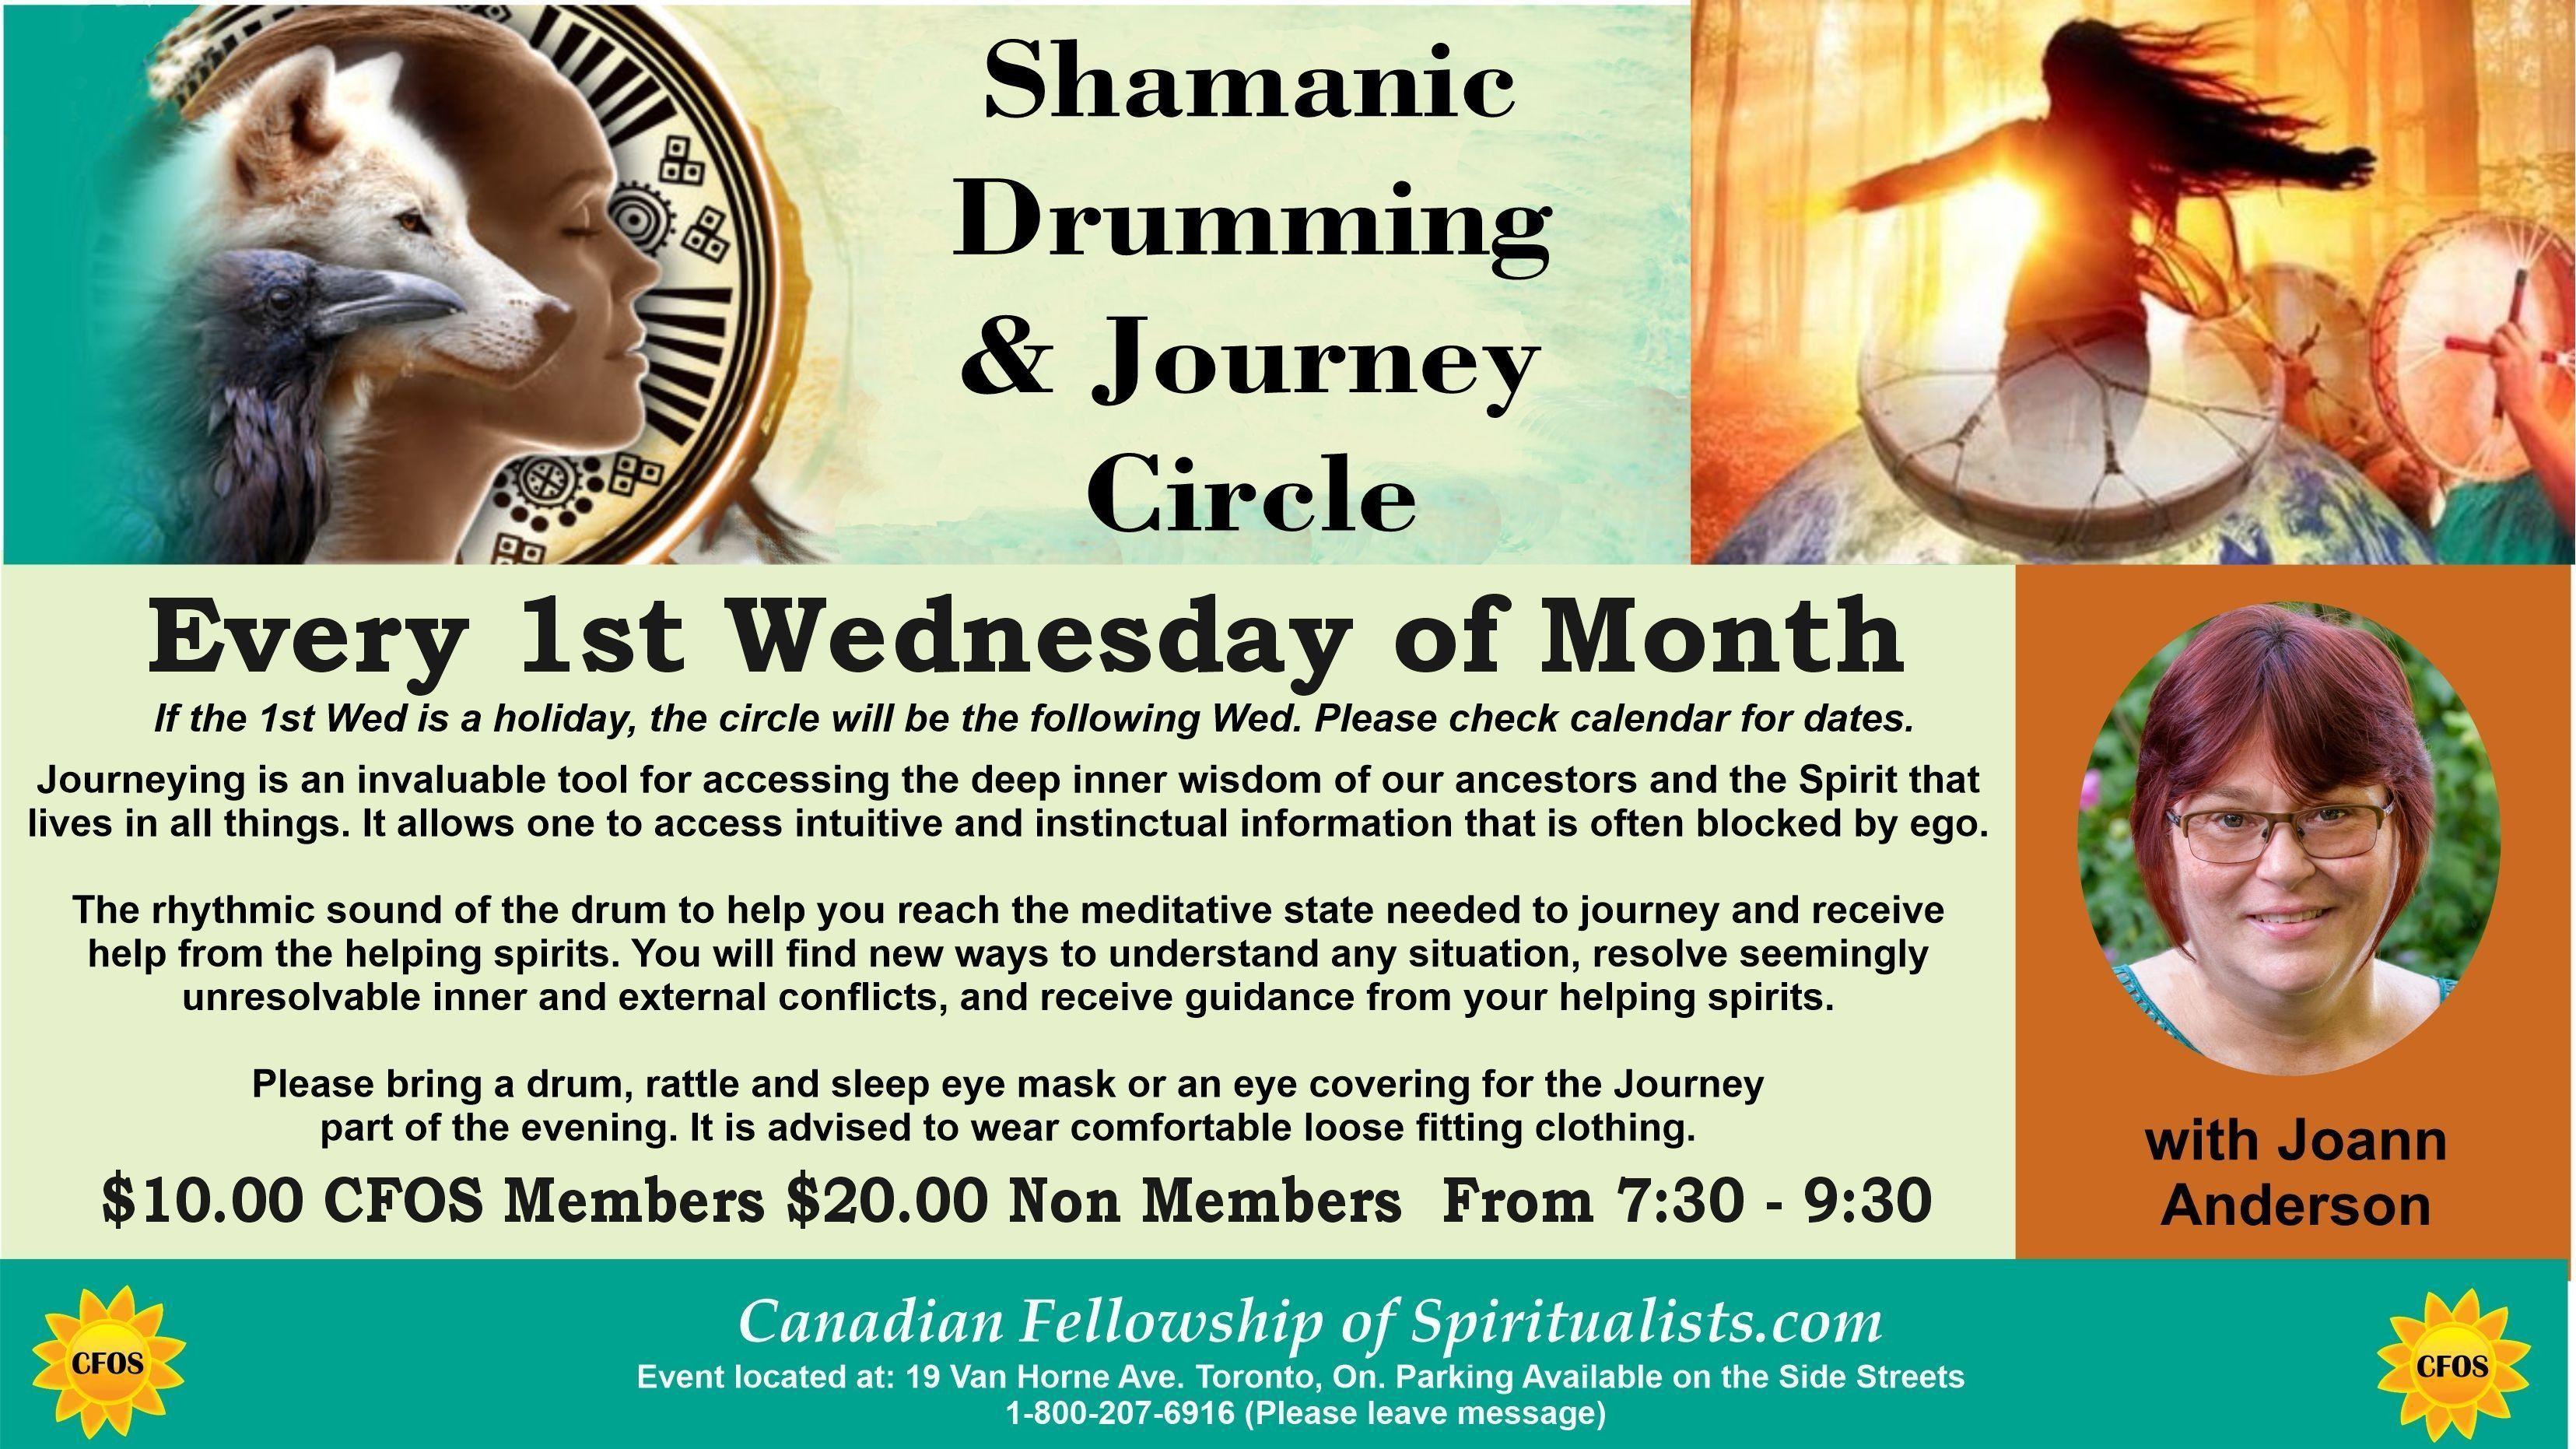 Shamanic Drumming and Journeying Circle